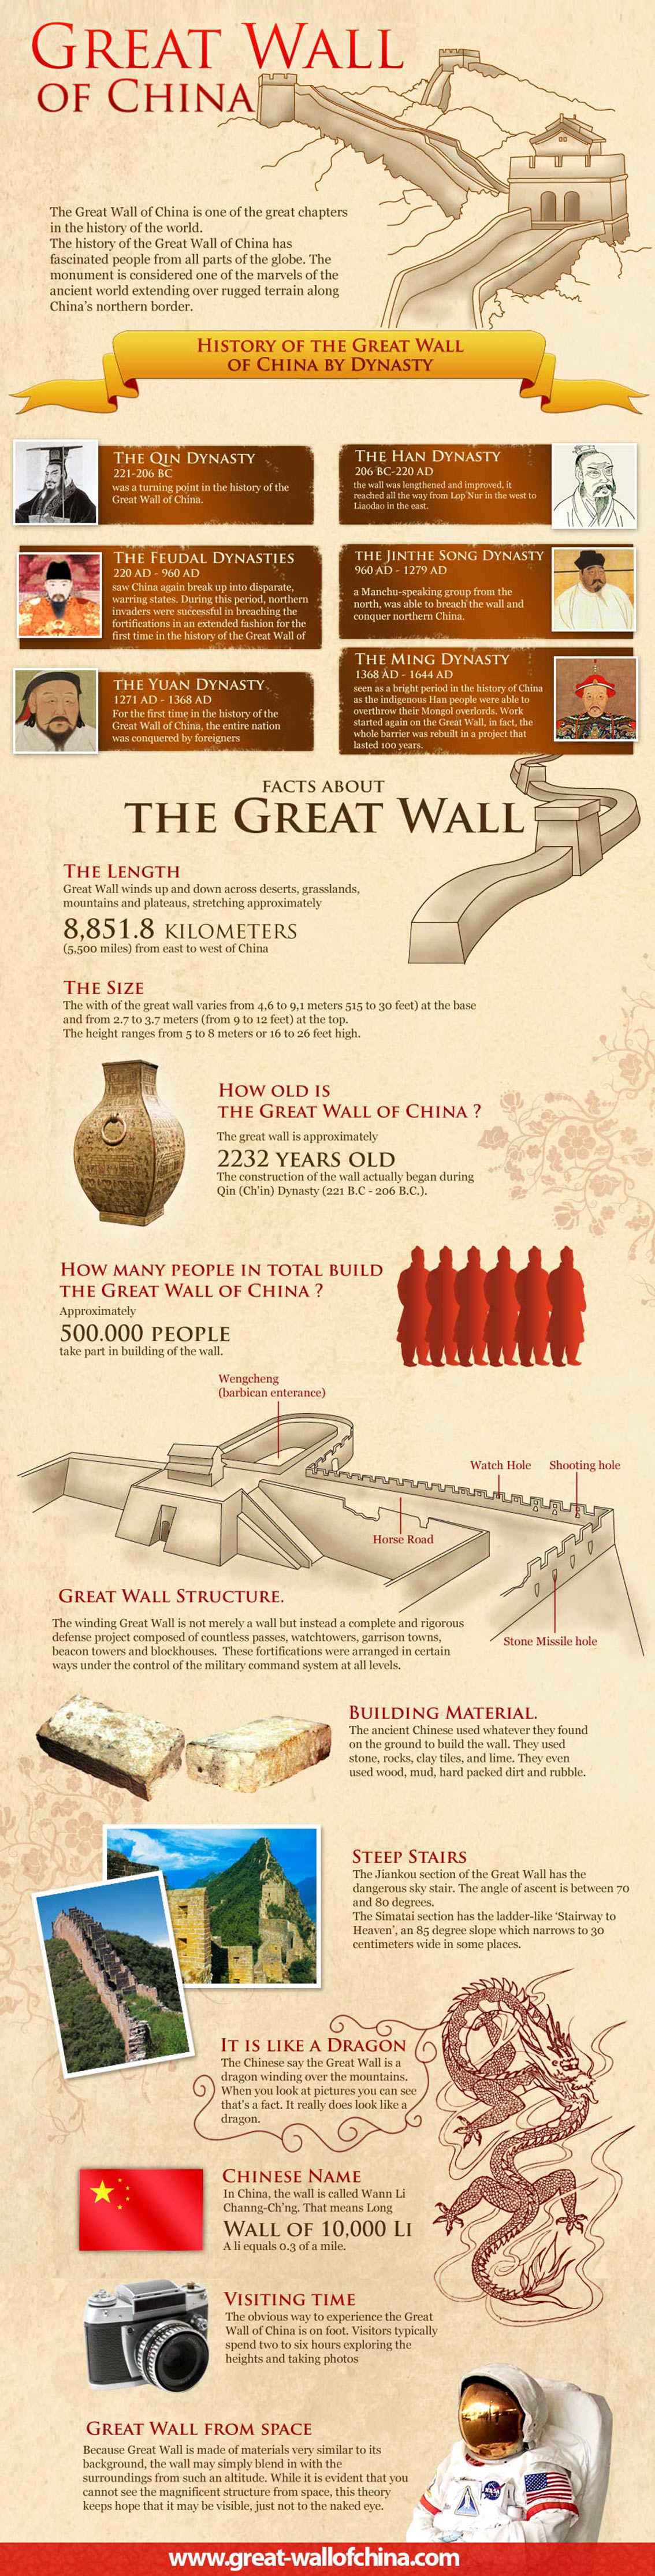 History of The Great Wall of China - Travel Infographic